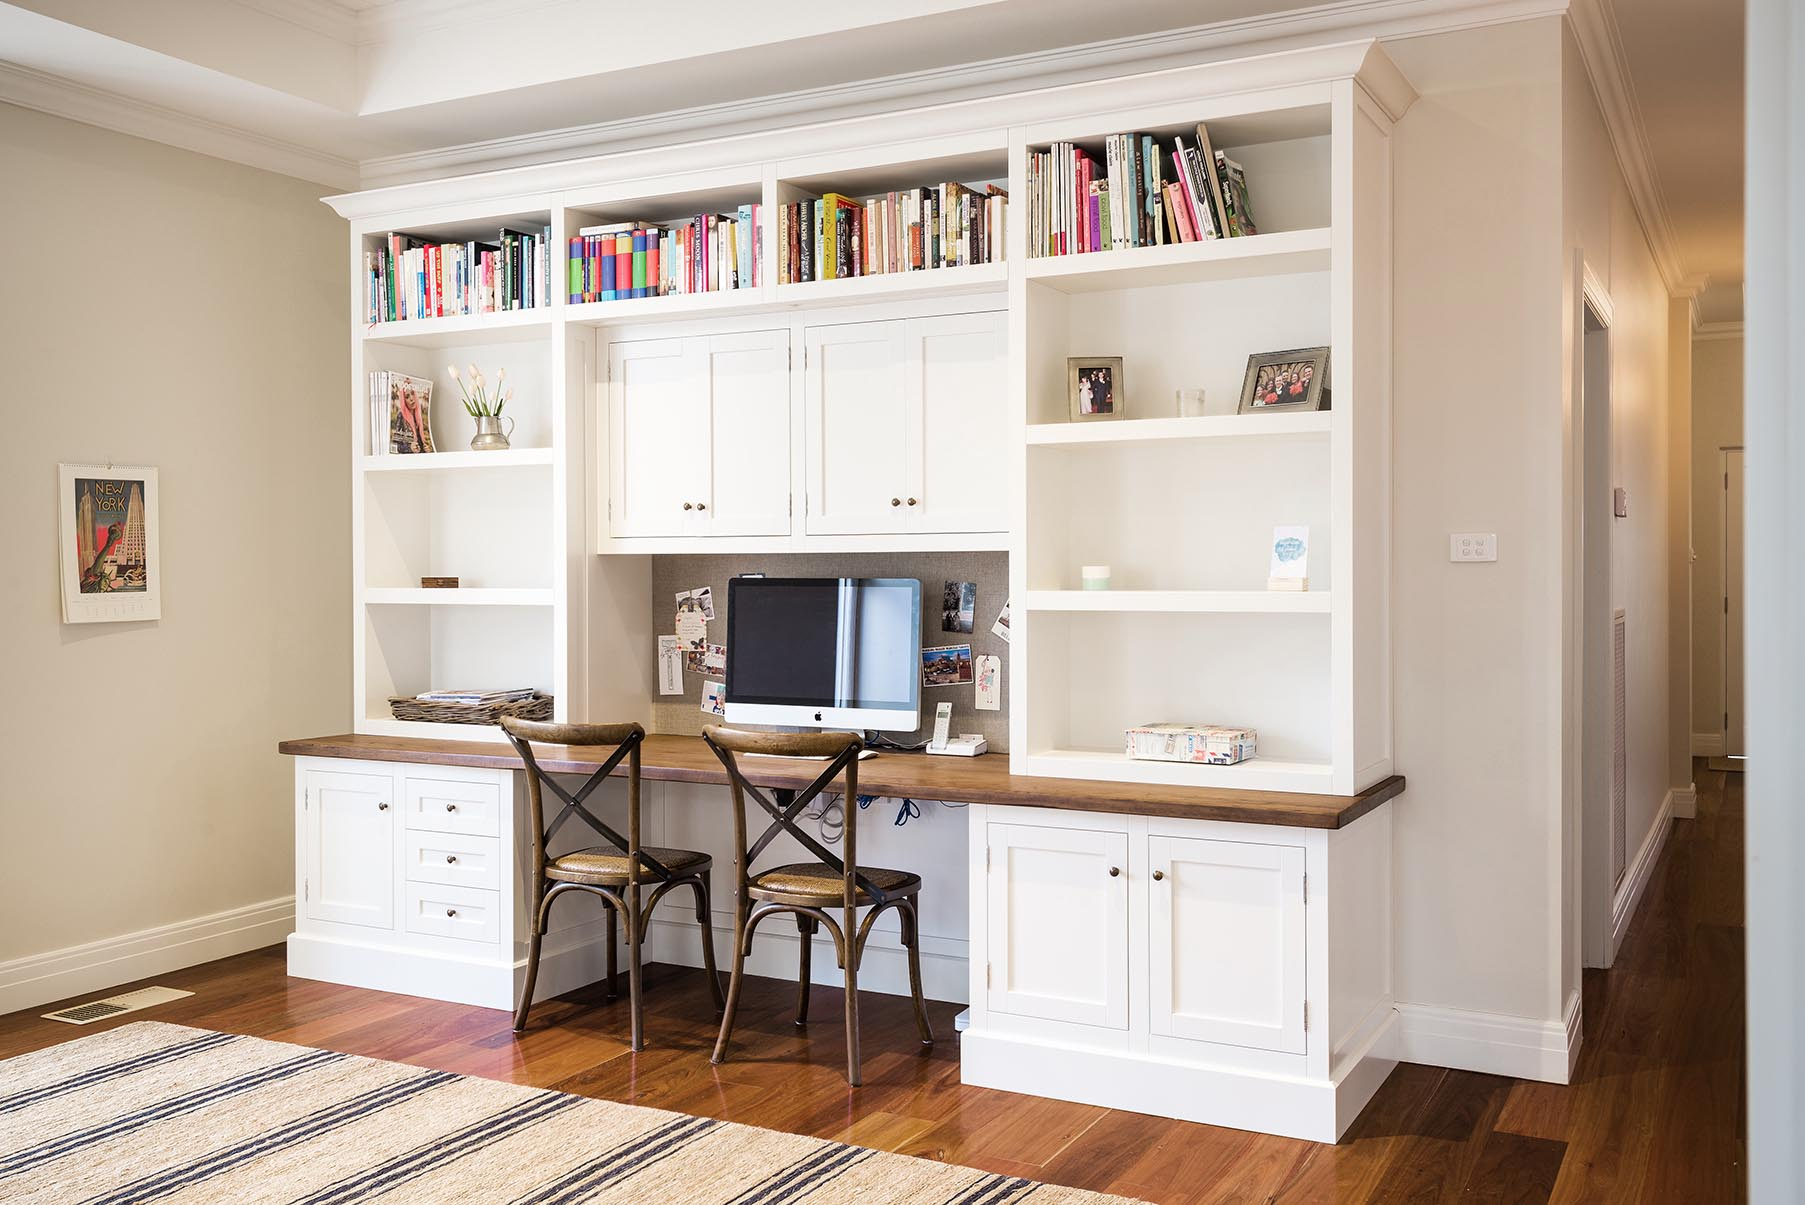 Steding Interiors & Joinery